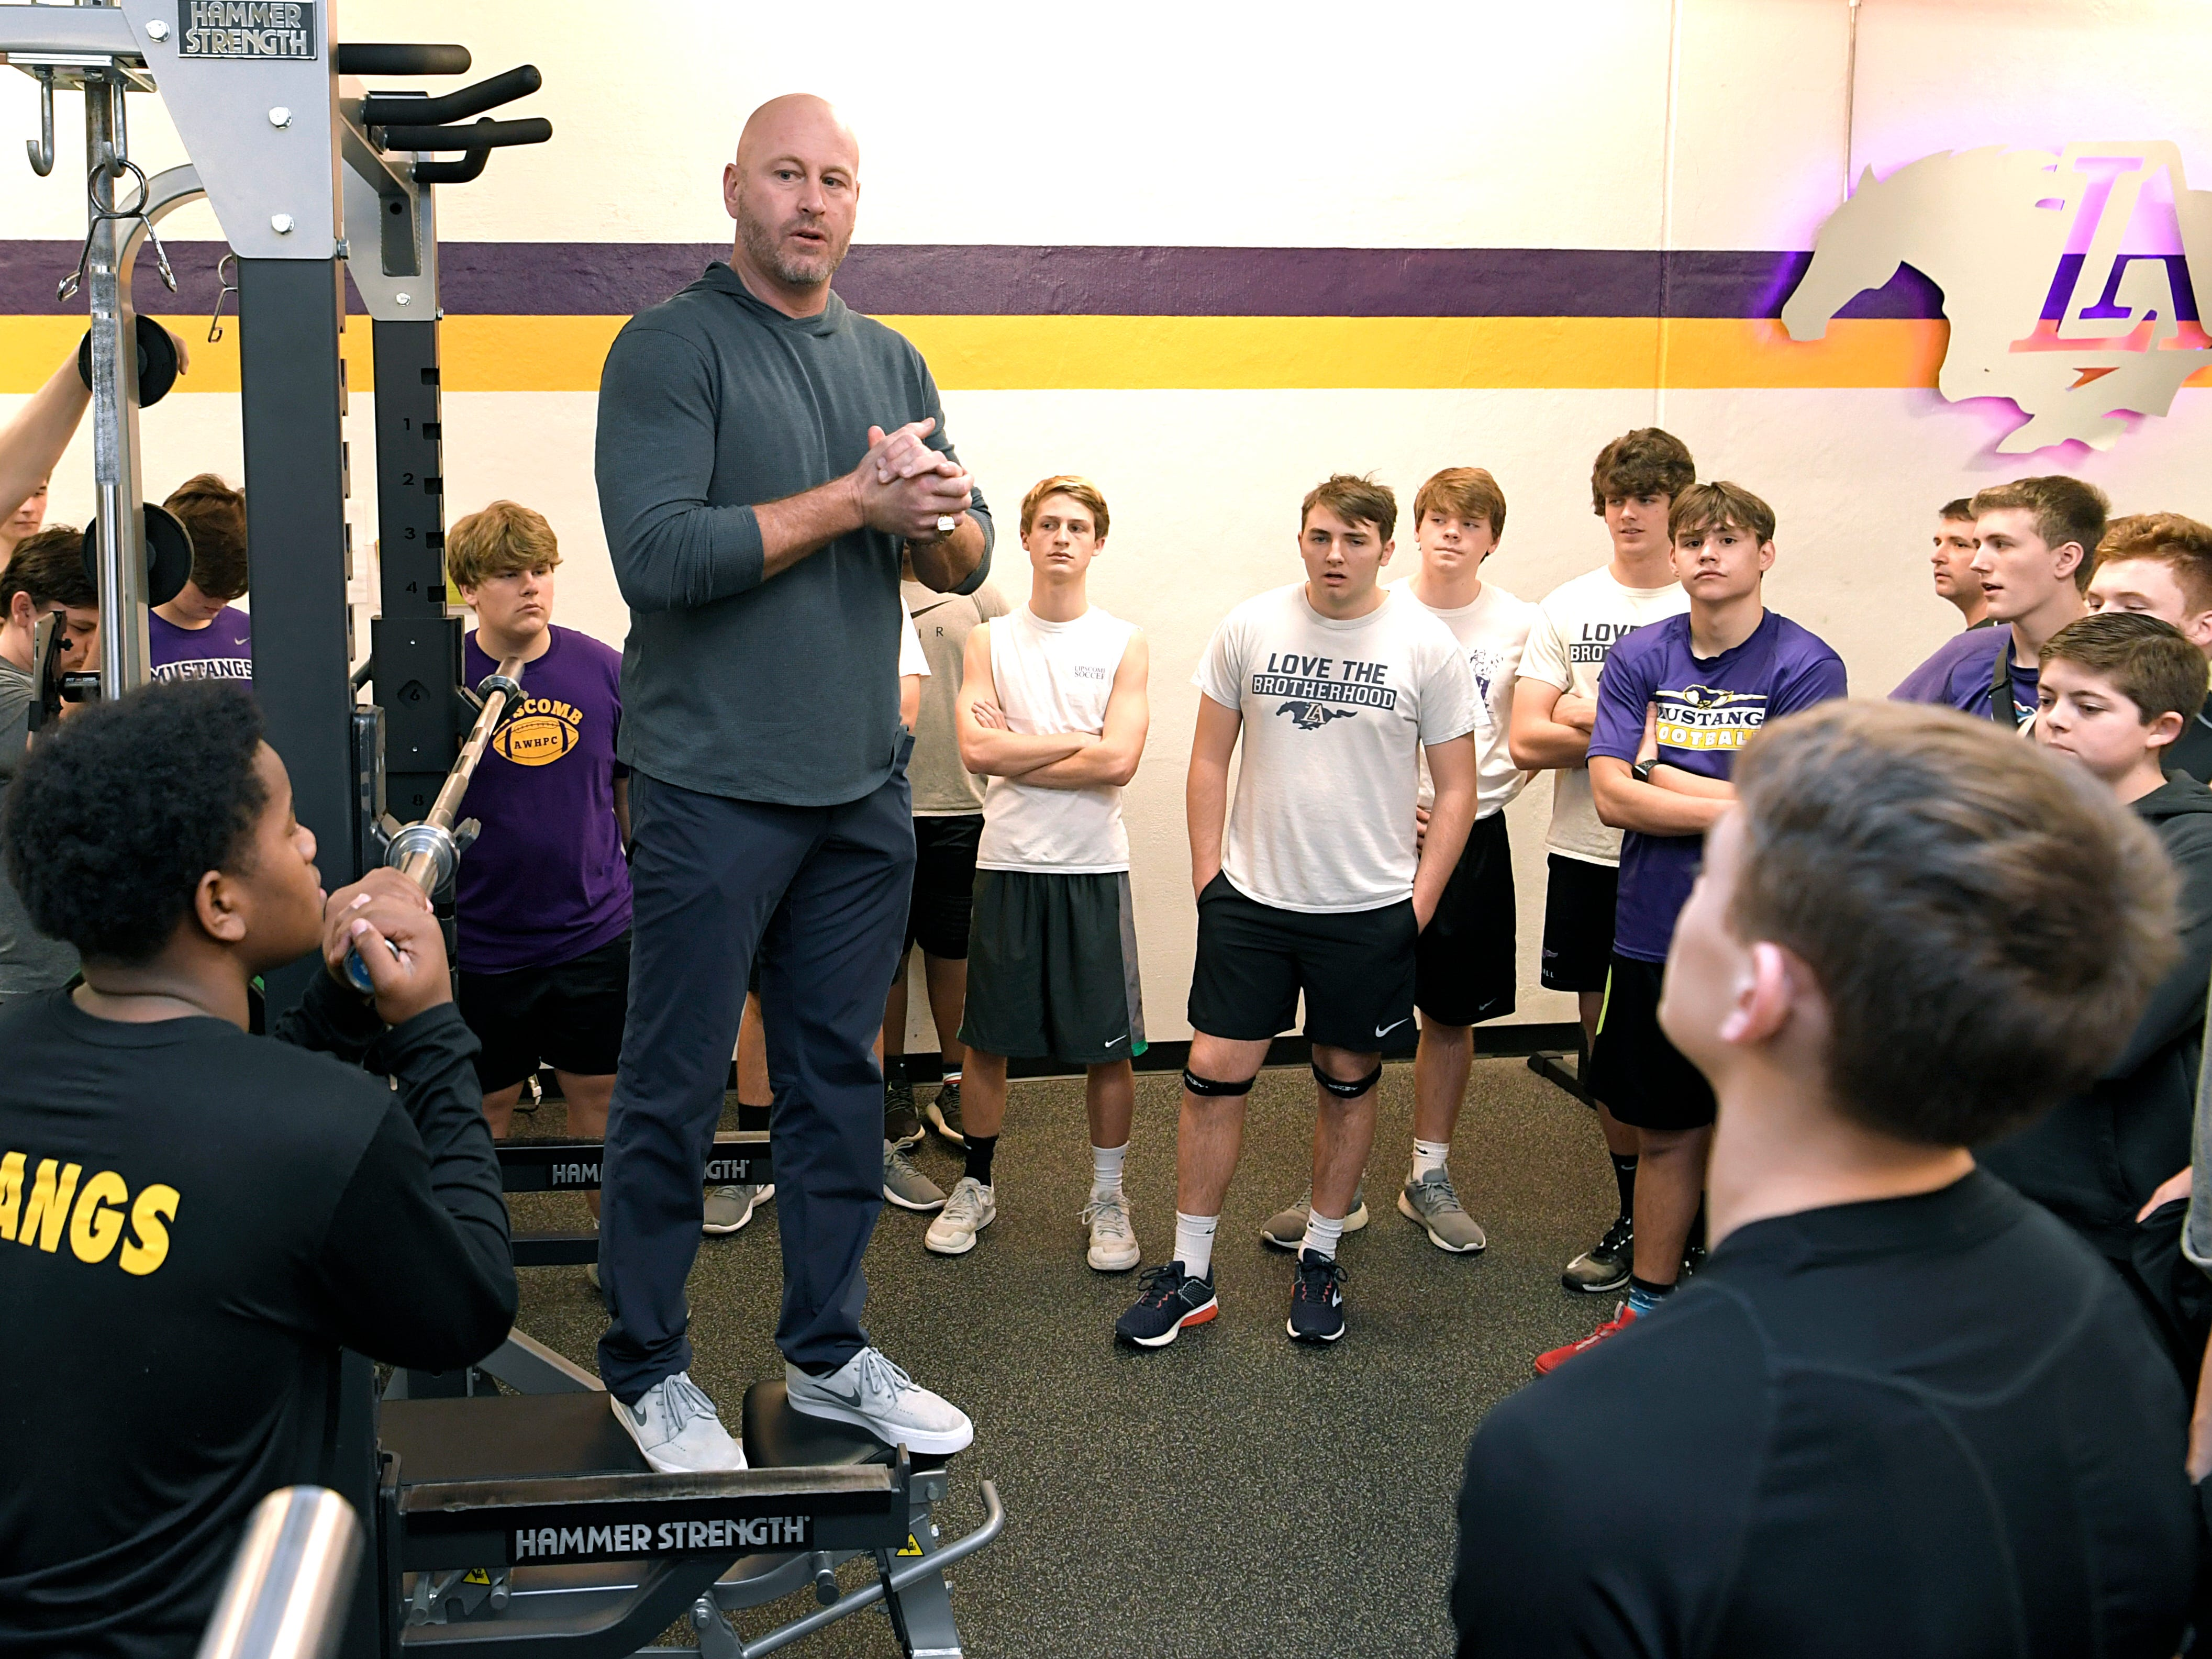 Former NFL player and Lipscomb Academy football coach Trent Dilfer talks to his team after a morning weight training session at  Lipscomb Academy in Nashville on Wednesday, Feb. 20, 2019.